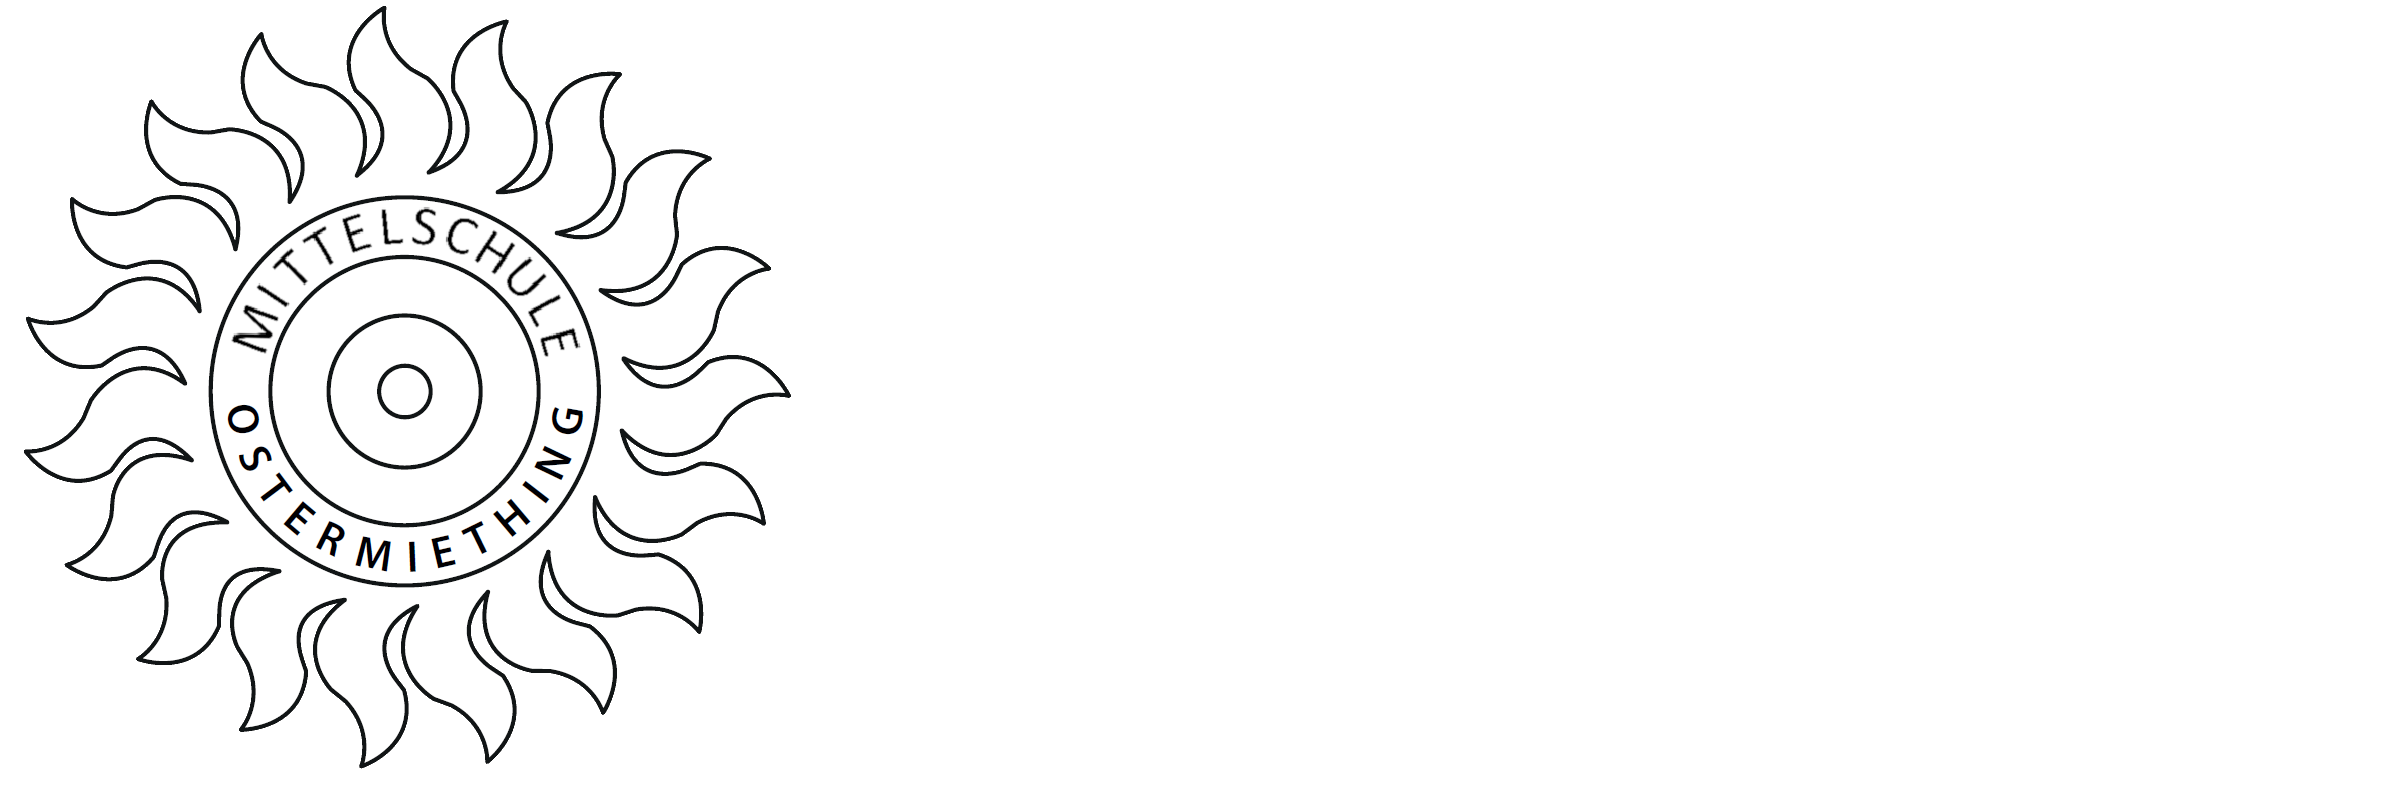 HS Ostermiething